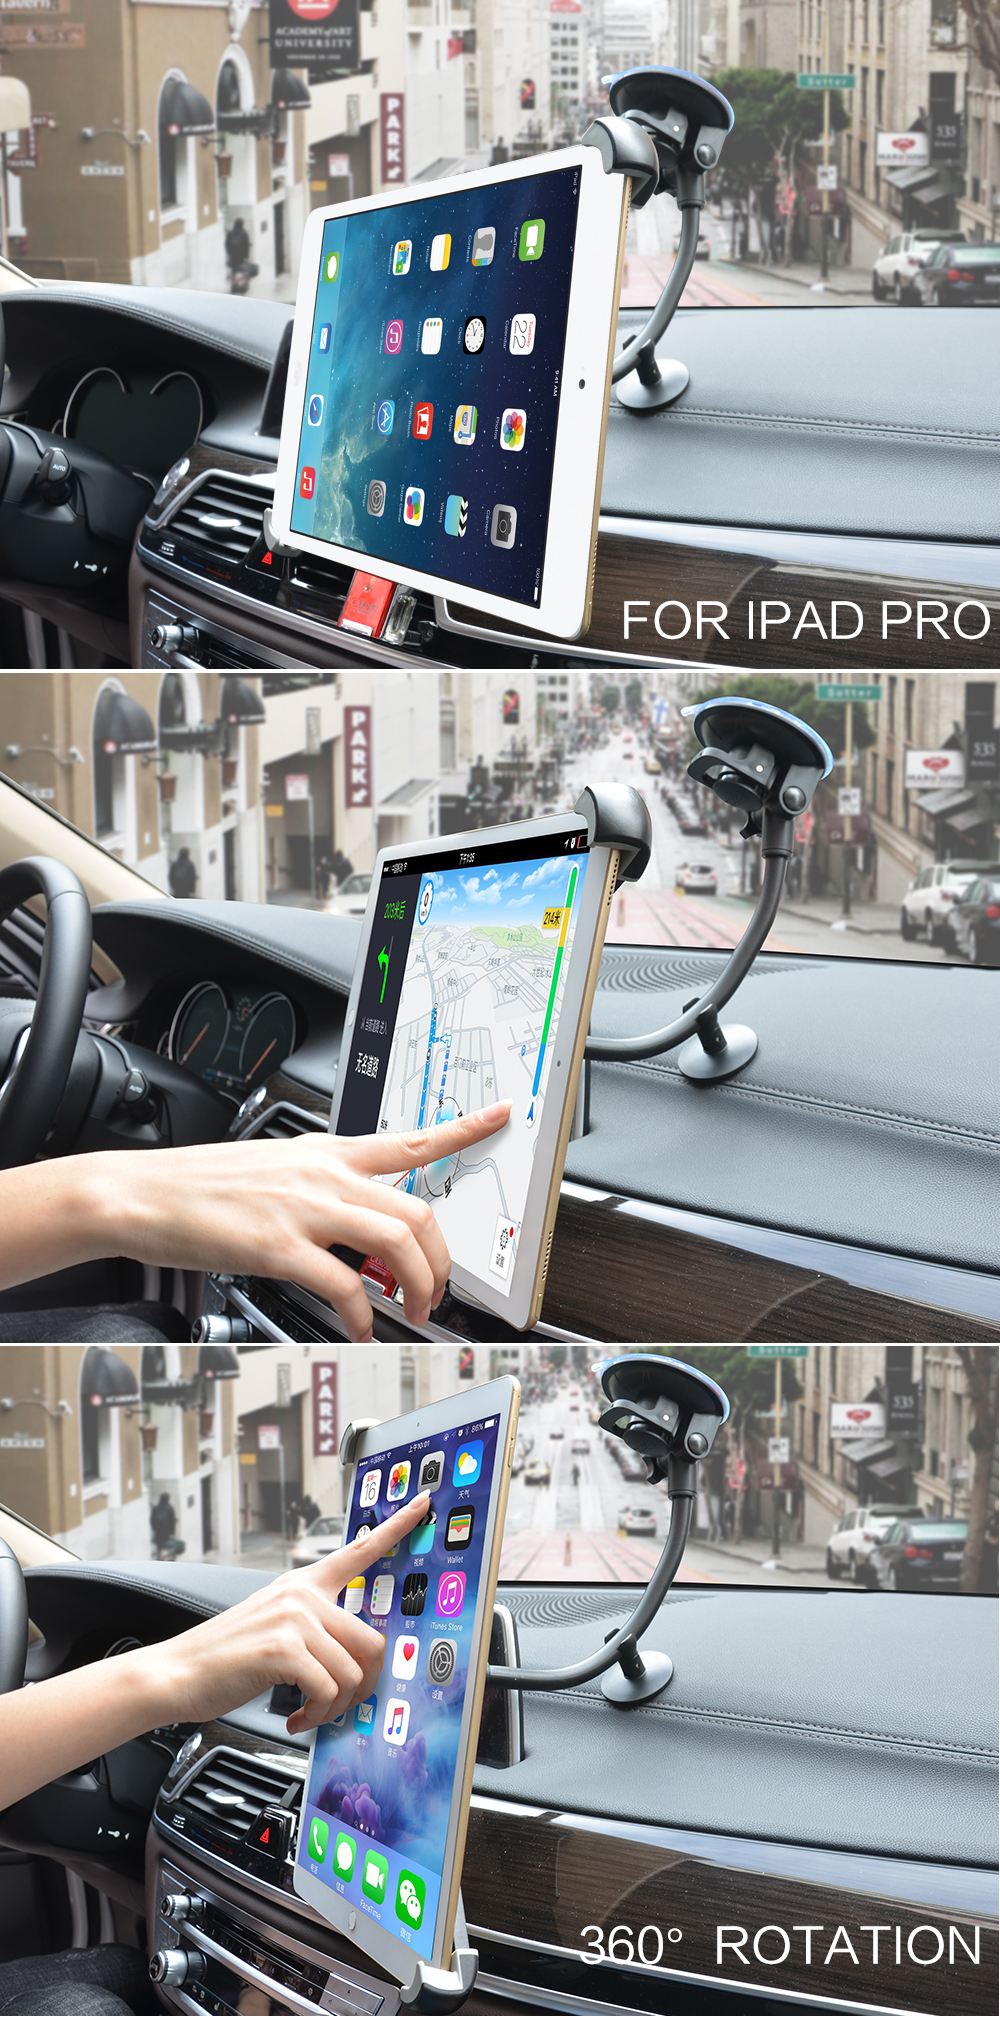 Universal Tab Car Holder Tablet Windshield Stand Mount Long Arm Support Holders 360 Rotation with 5 & 11 Holder for TabletUSD 8 99 13 49 piece